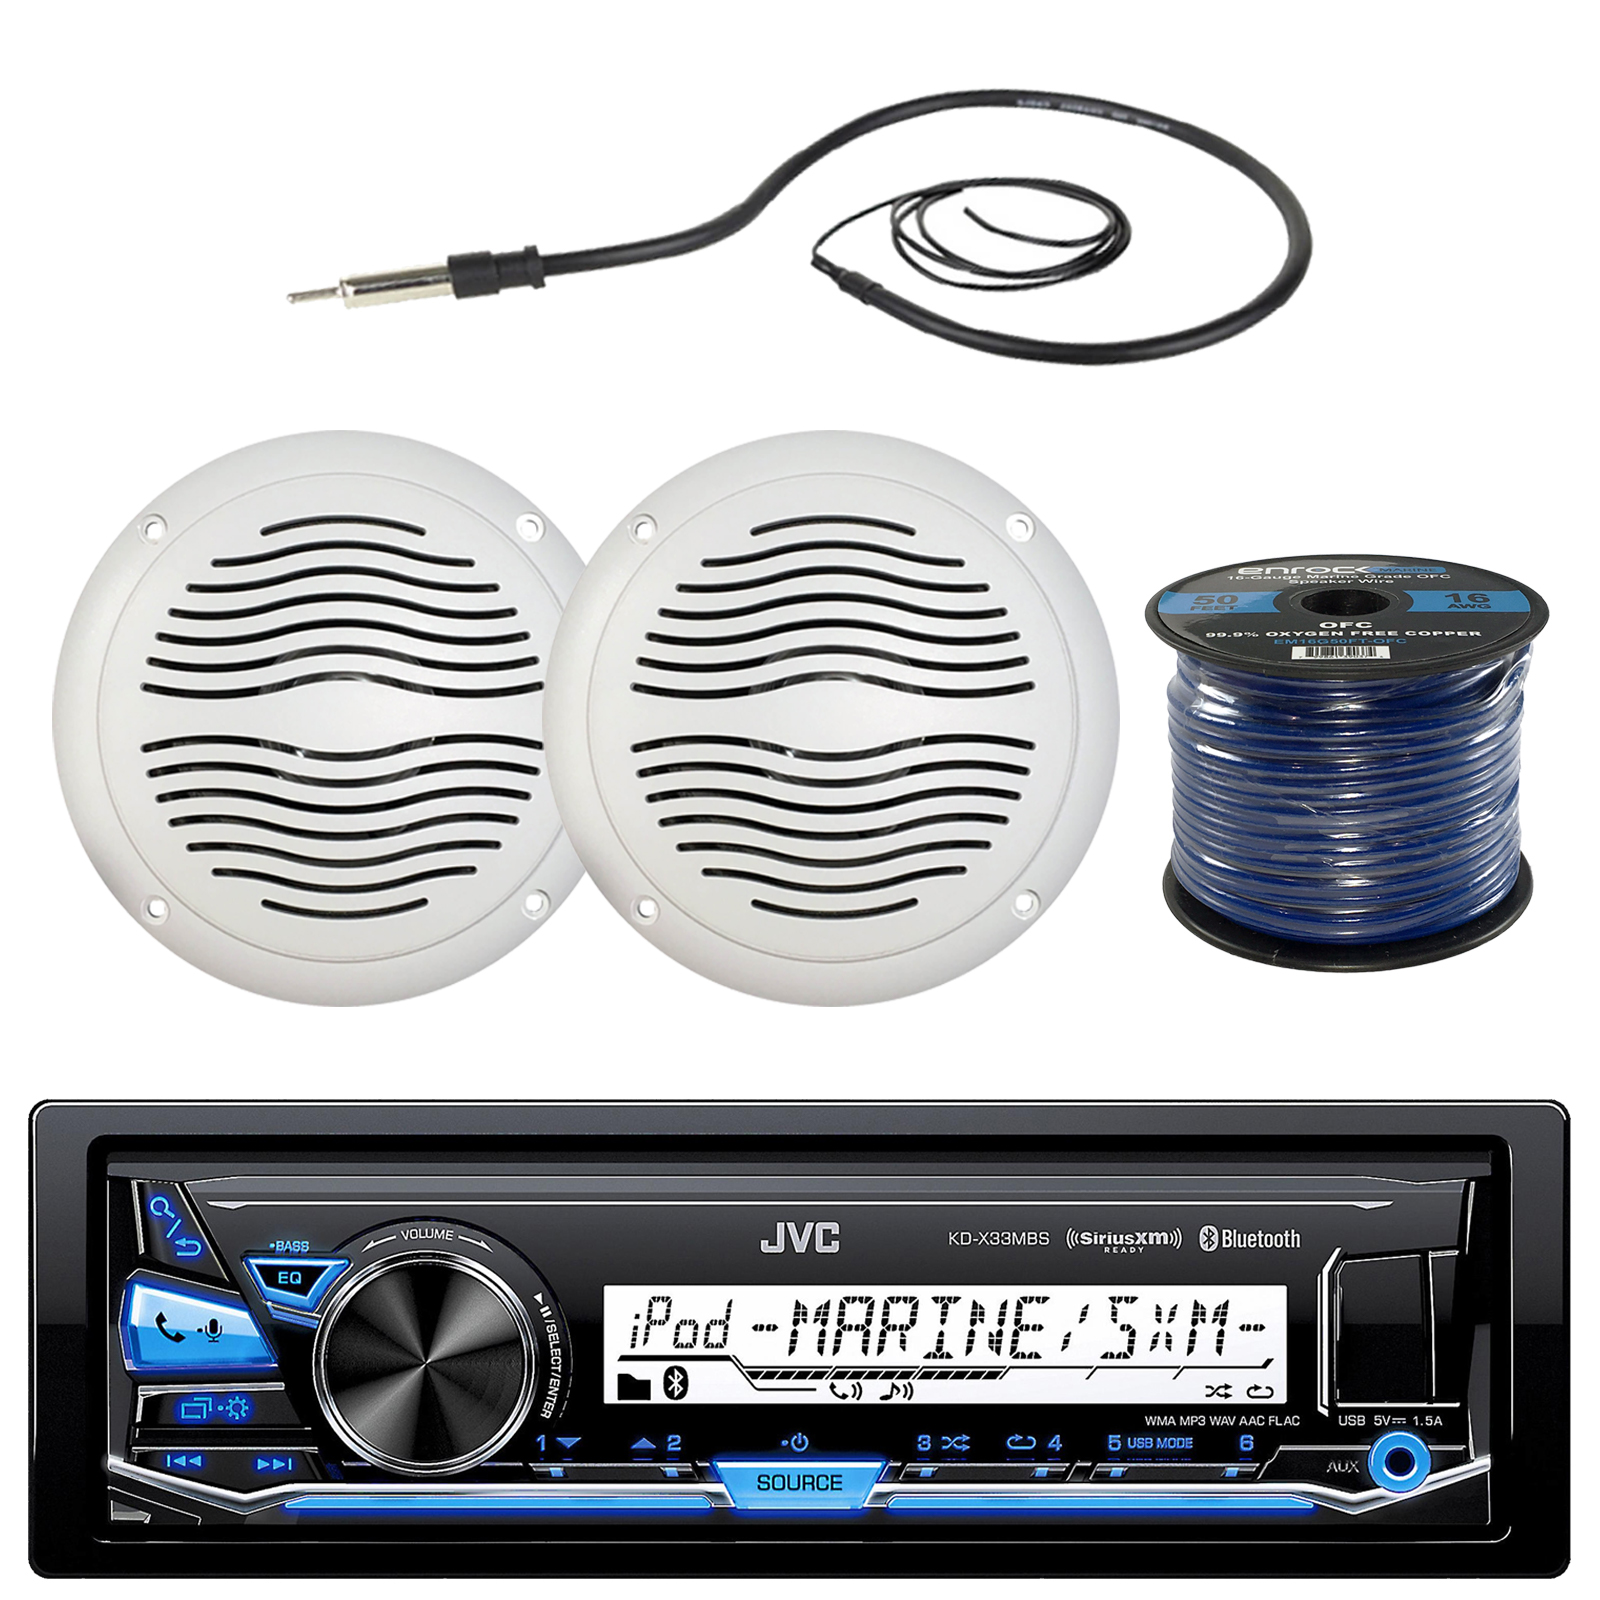 "JVC KD-X33MBS Marine Boat Yacht Radio Stereo MP3 Player Receiver Bundle Combo With 2x Magnadyne WR40W 5"" Inch White Waterproof Outdoor Speakers + Enrock 22"" Radio Antenna + 50 Foot 16g Speaker Wire"